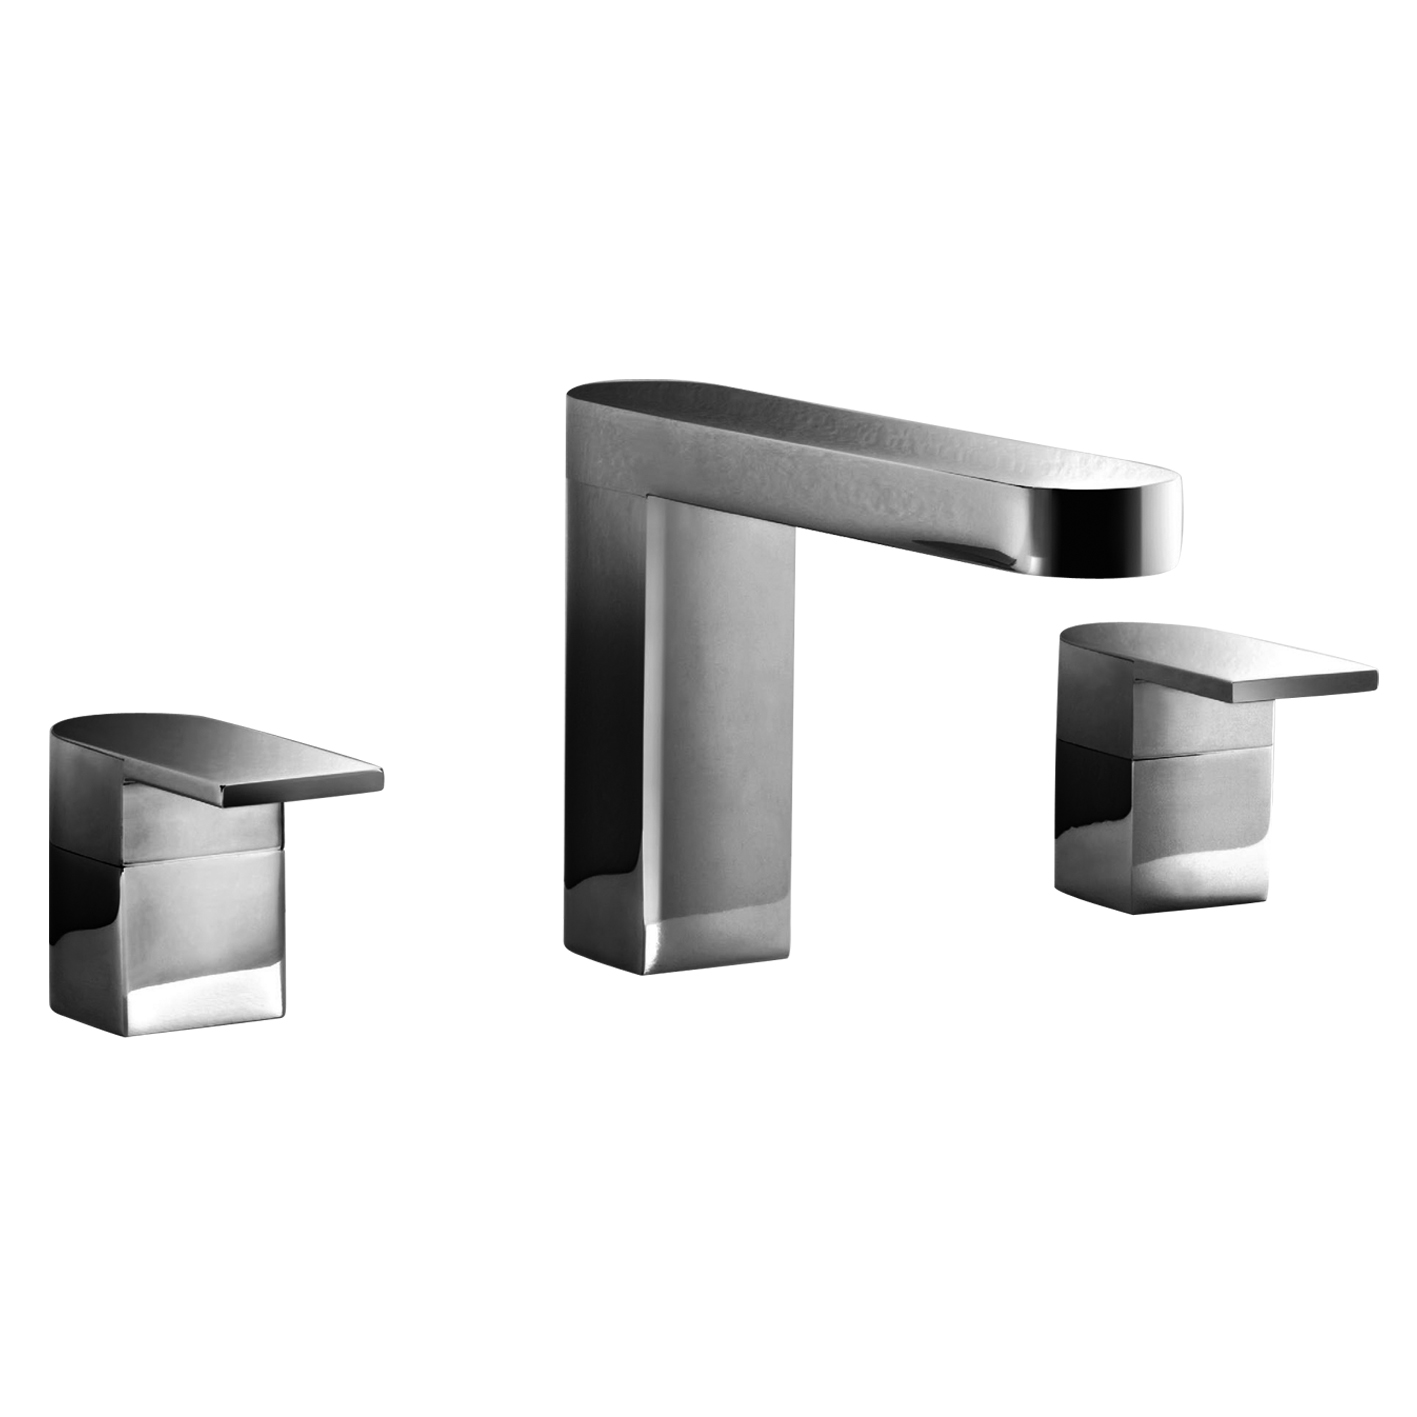 Fantini 6304U Mare Three-Hole Washbasin Faucet